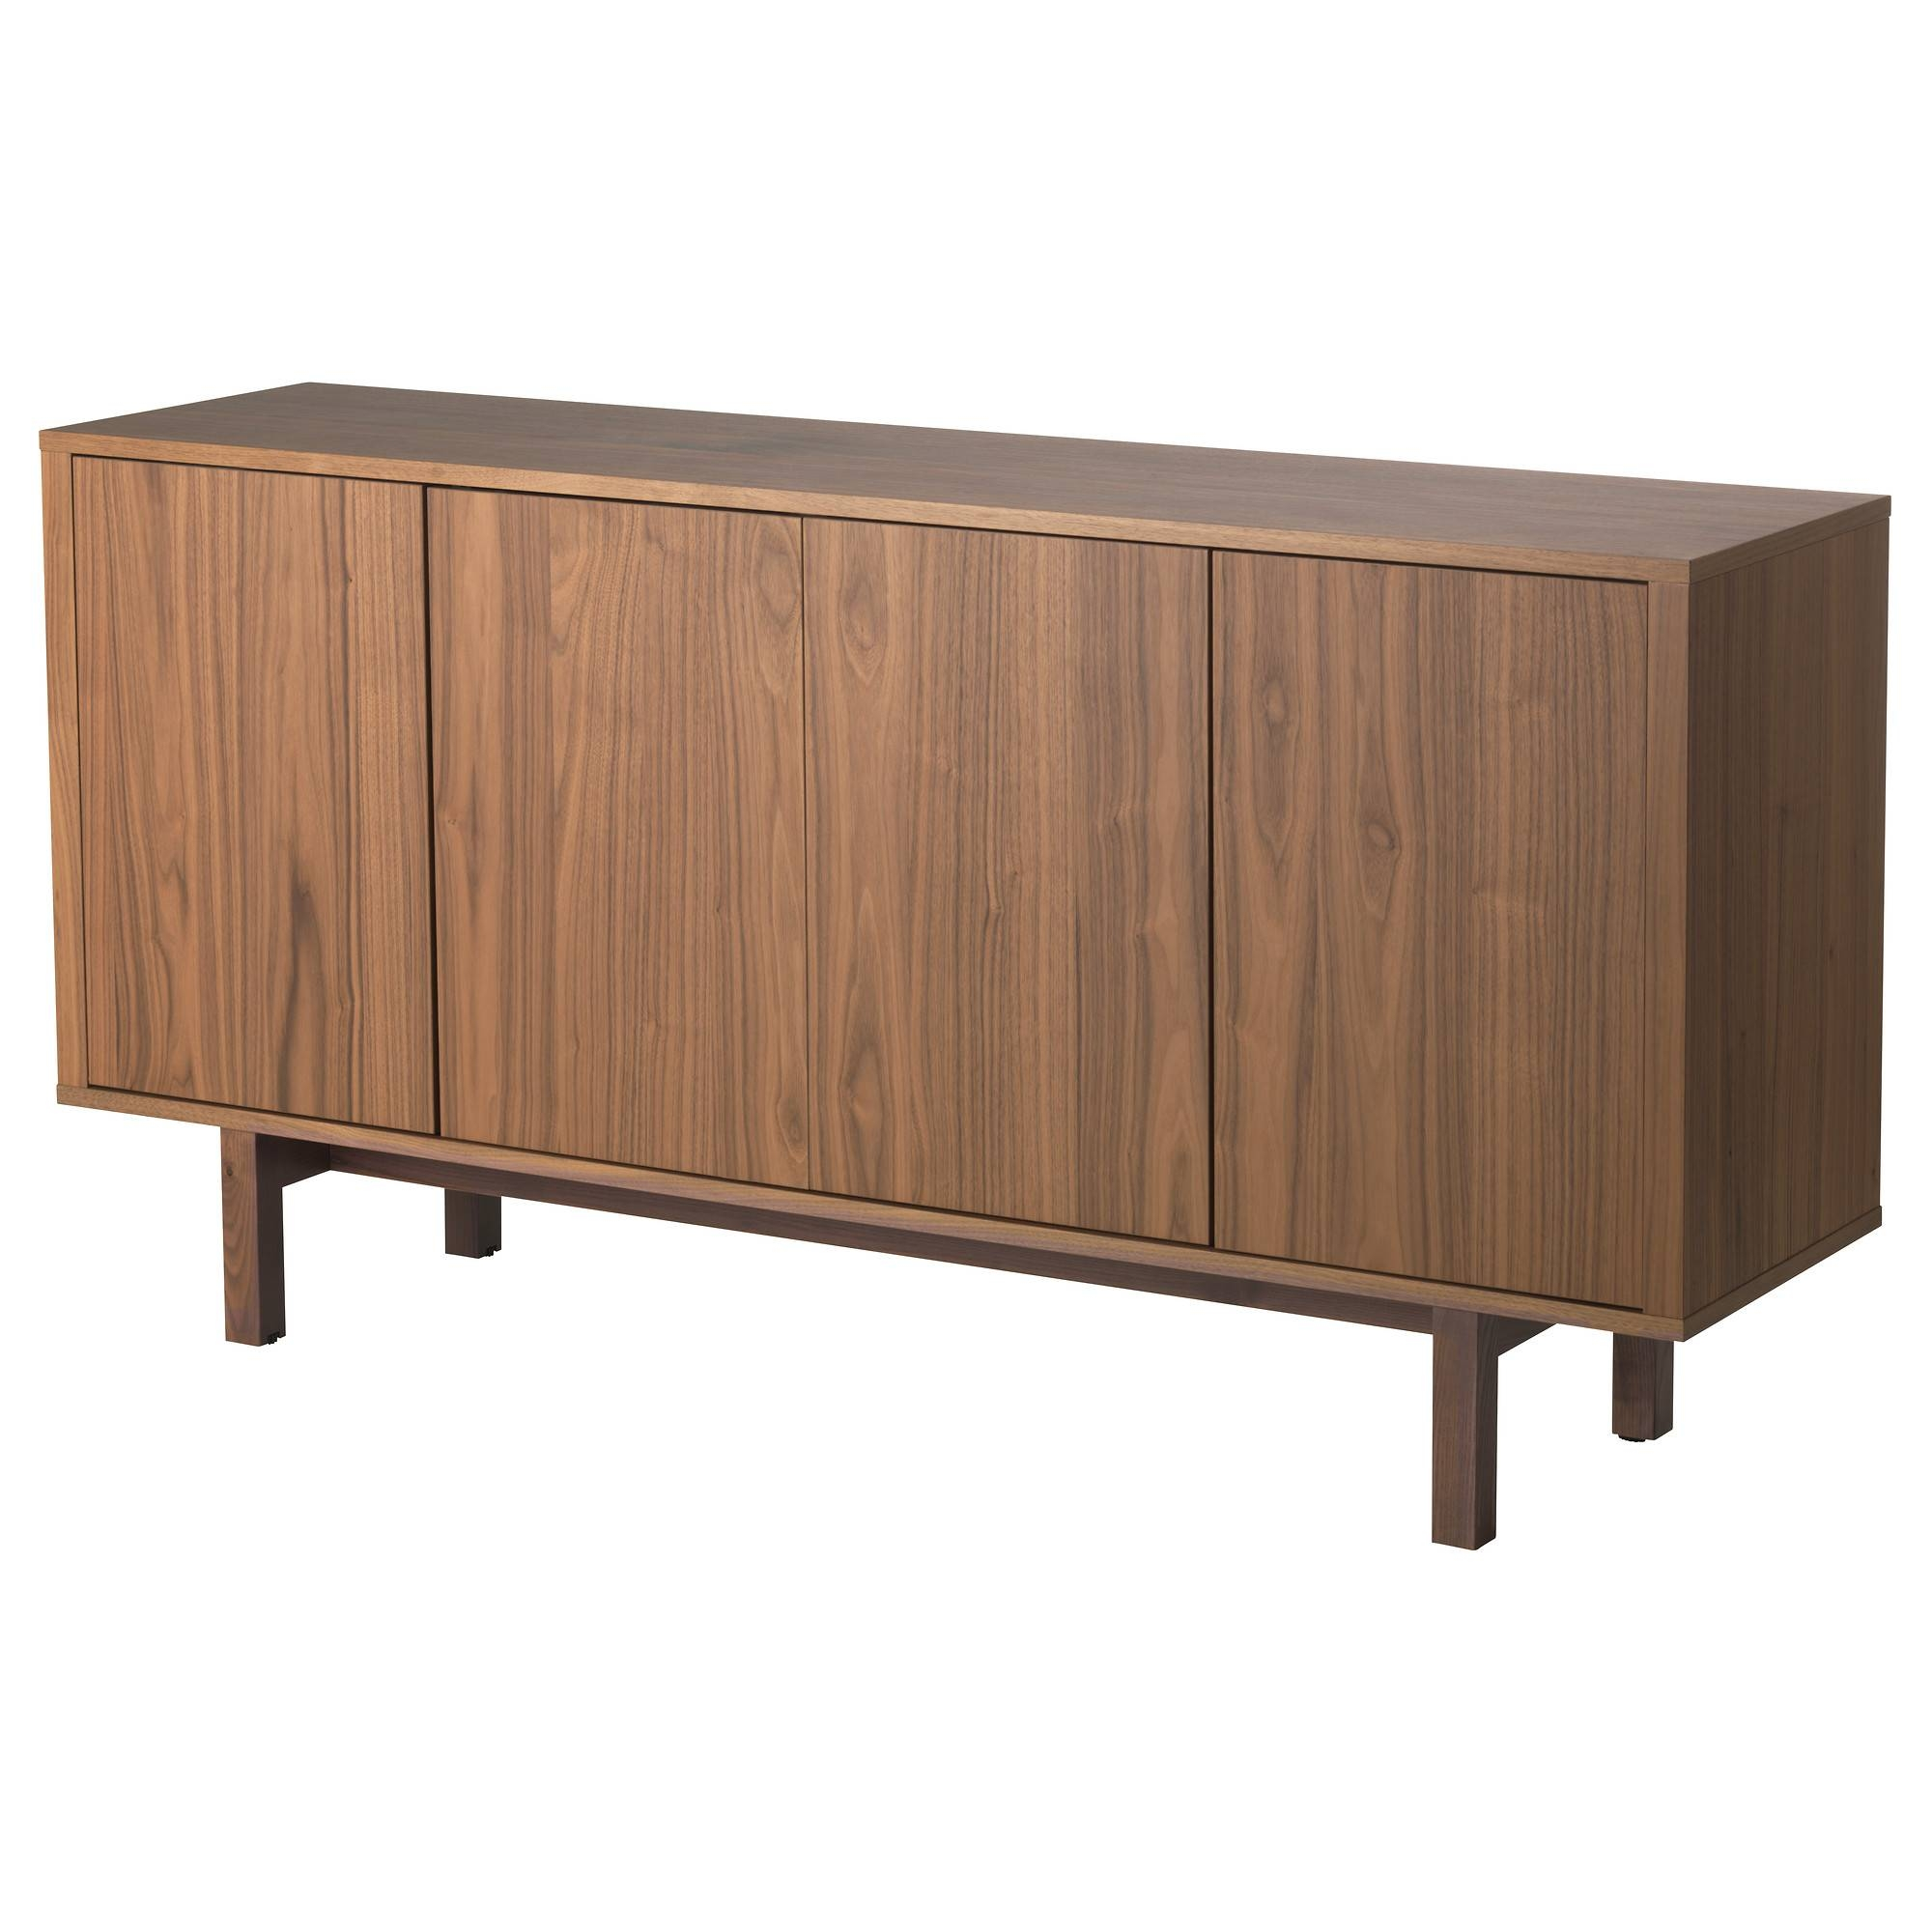 Buffet Tables & Sideboards - Ikea with regard to Deep Sideboards (Image 4 of 15)